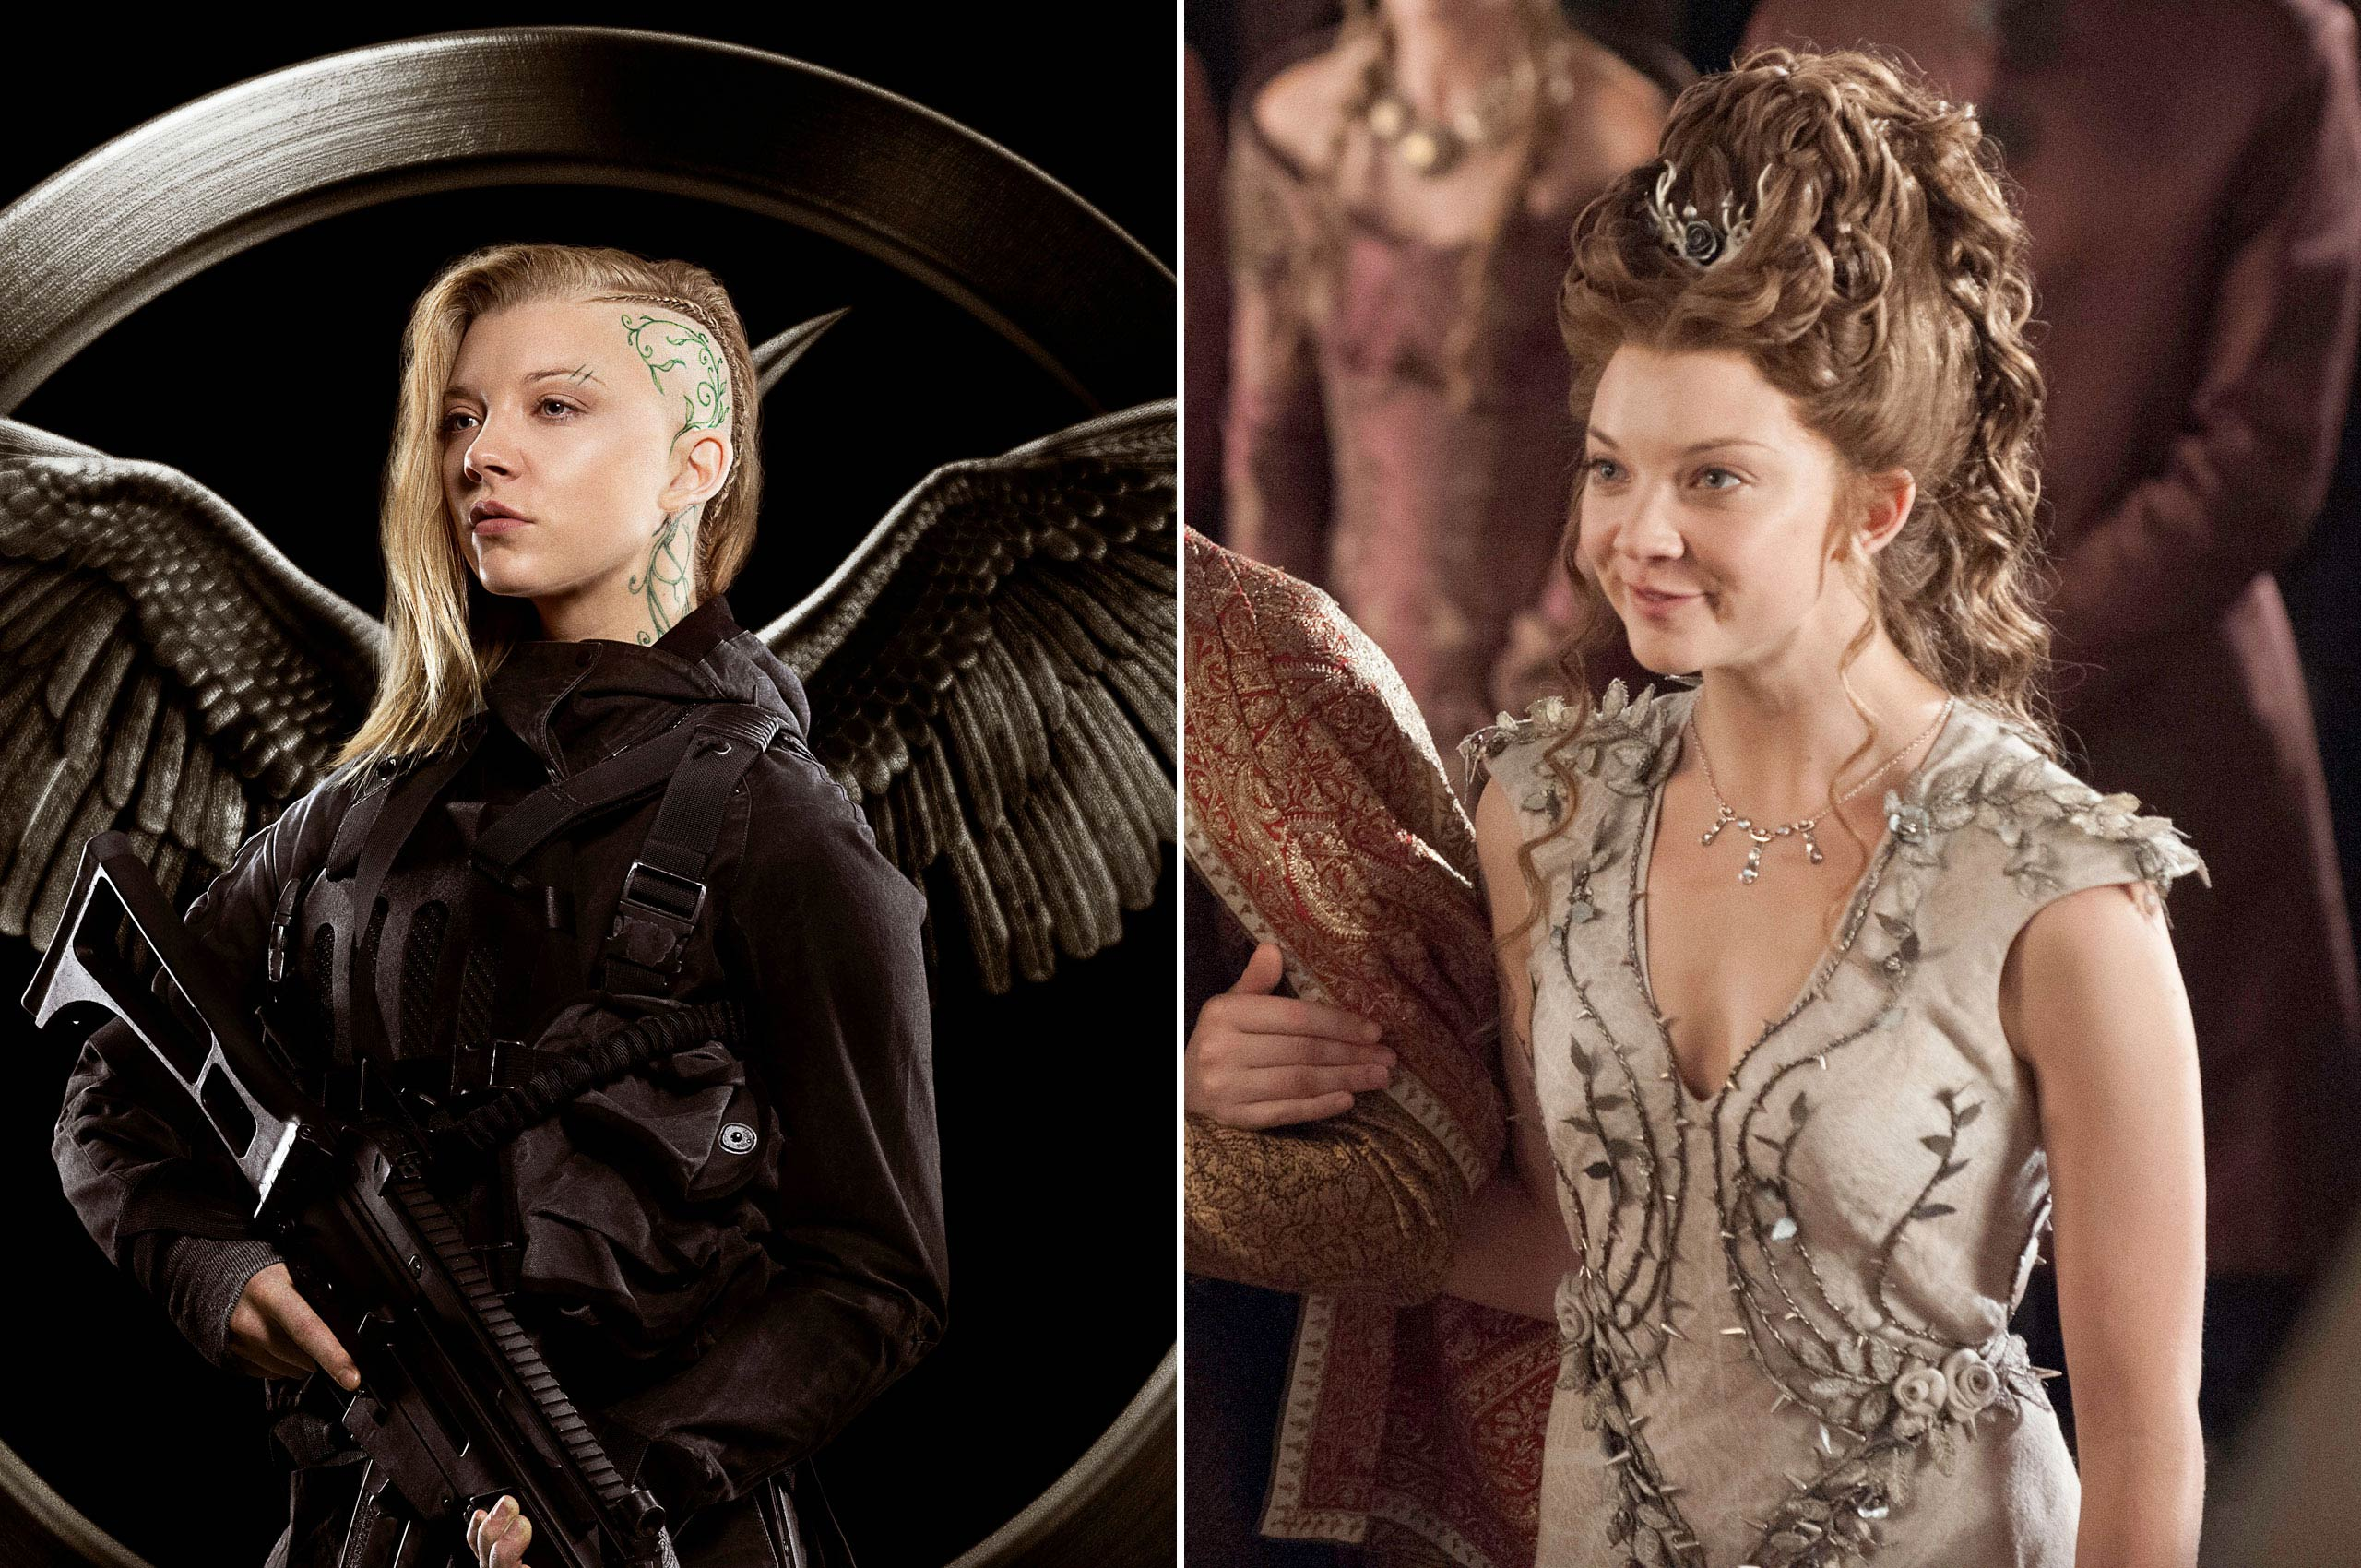 Natalie Dormer joins the cast of the <i>Hunger Games</i> as Cressida, a talented propaganda director, in <i>Mockingjay</i>, however, most people will better know her as Margaery Tyrell from <i>Game of Thrones</i>.